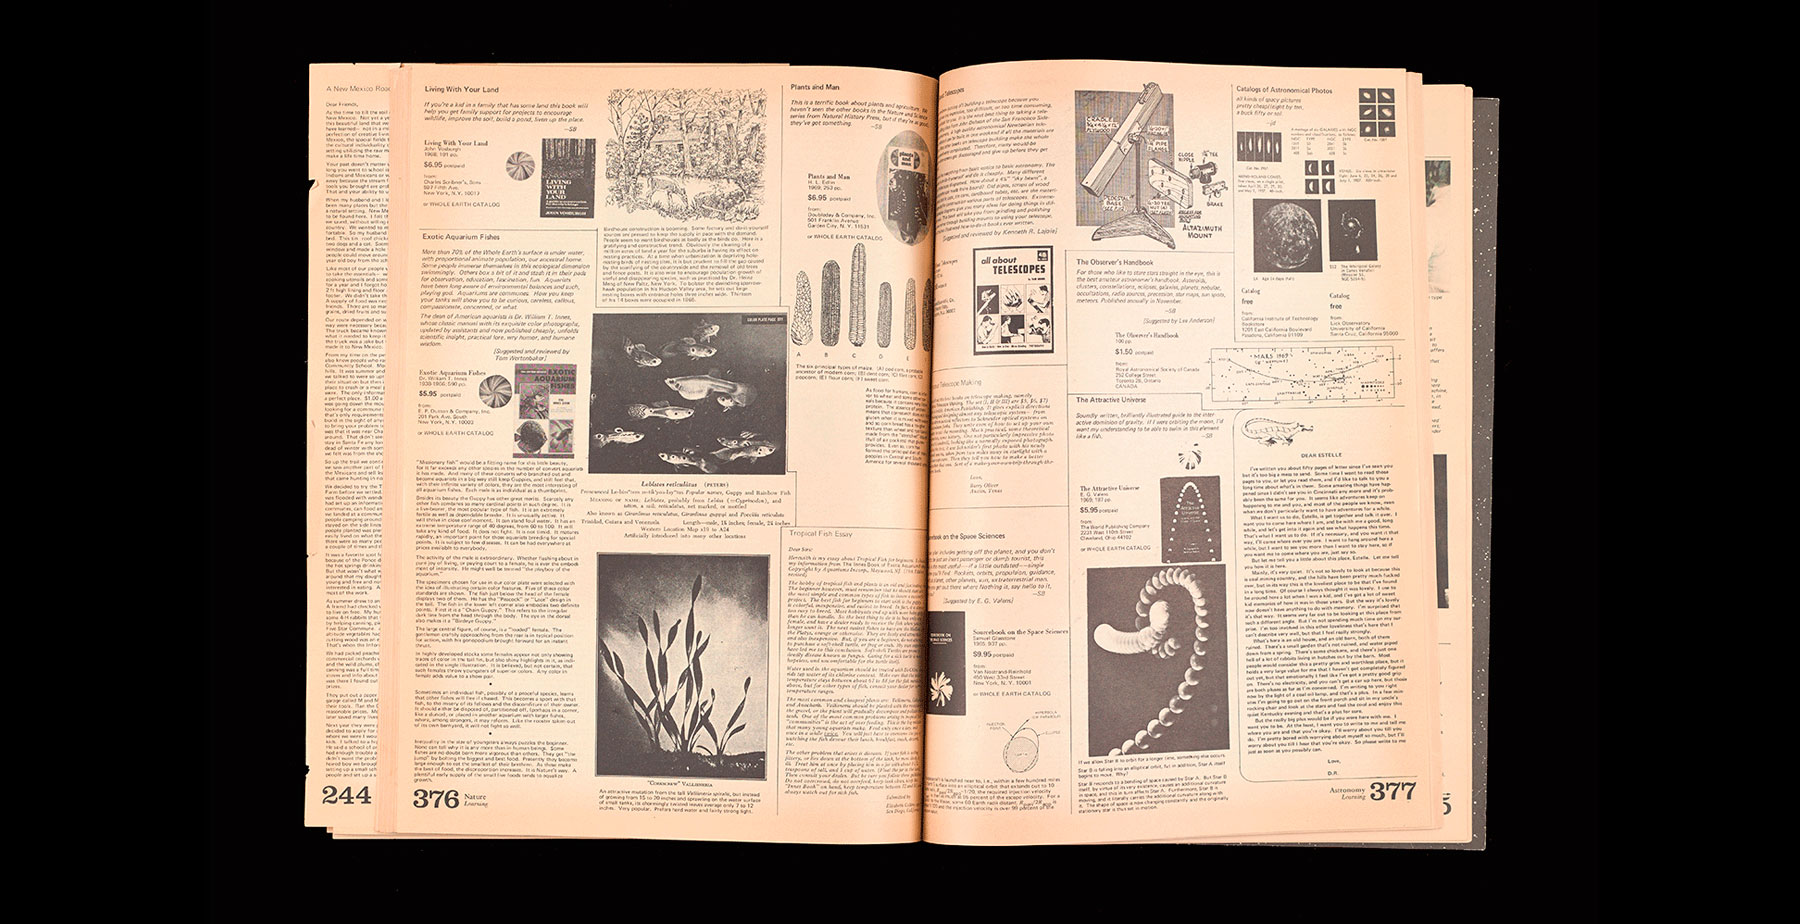 The last Whole Earth Catalog access to- tools Stewart Brand 1971